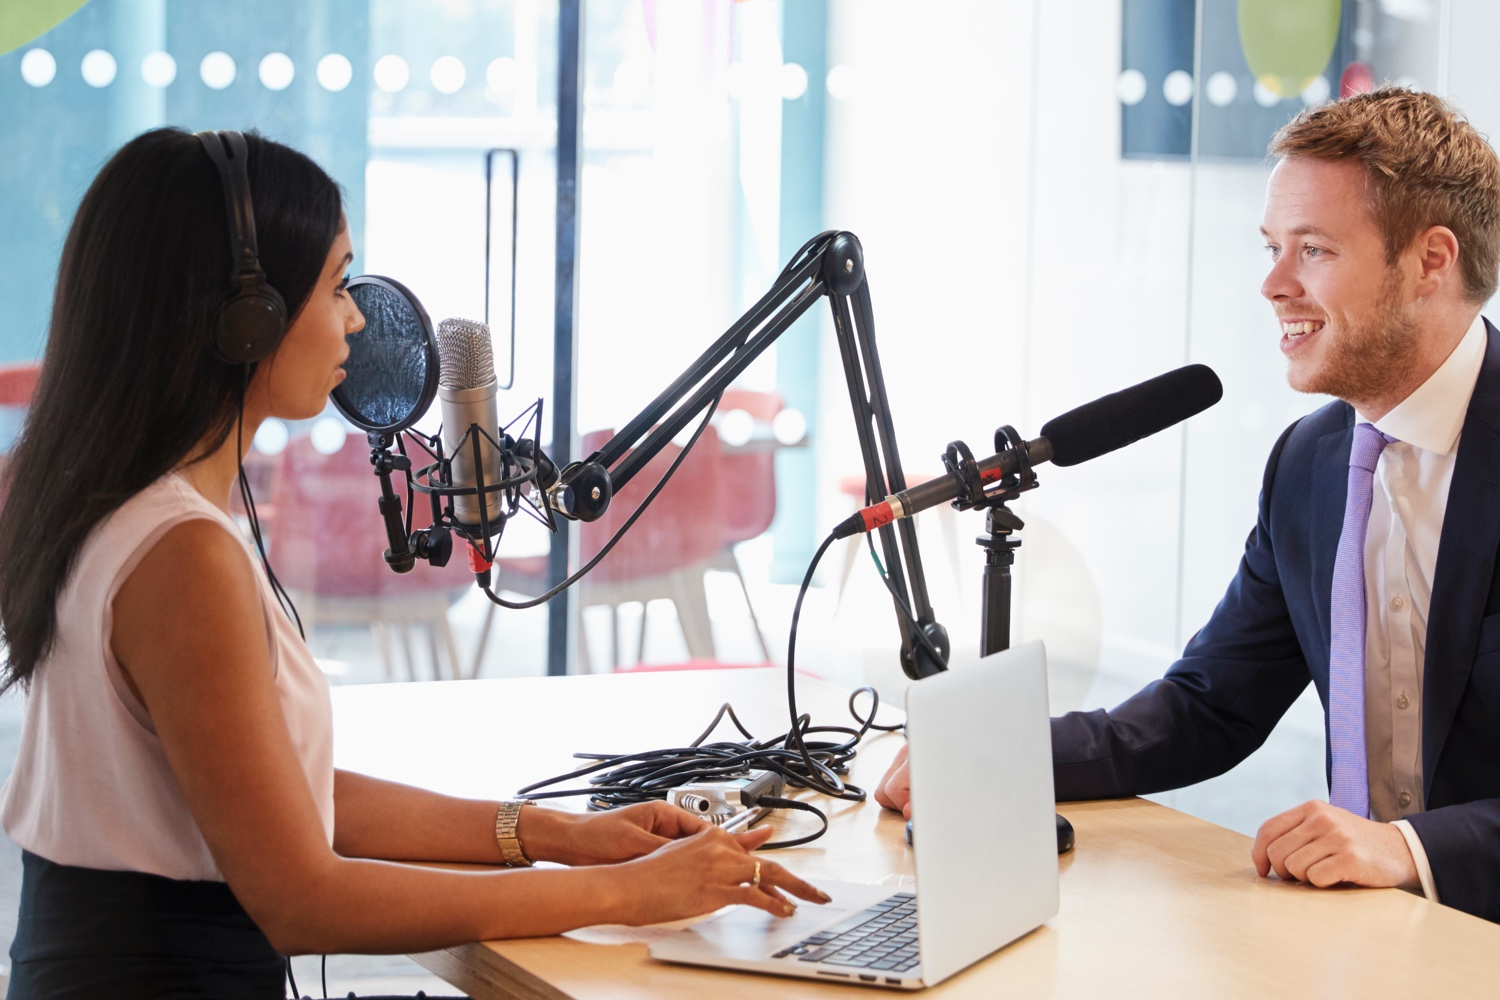 A woman interviewing a man sitting across from her in a podcast studio.